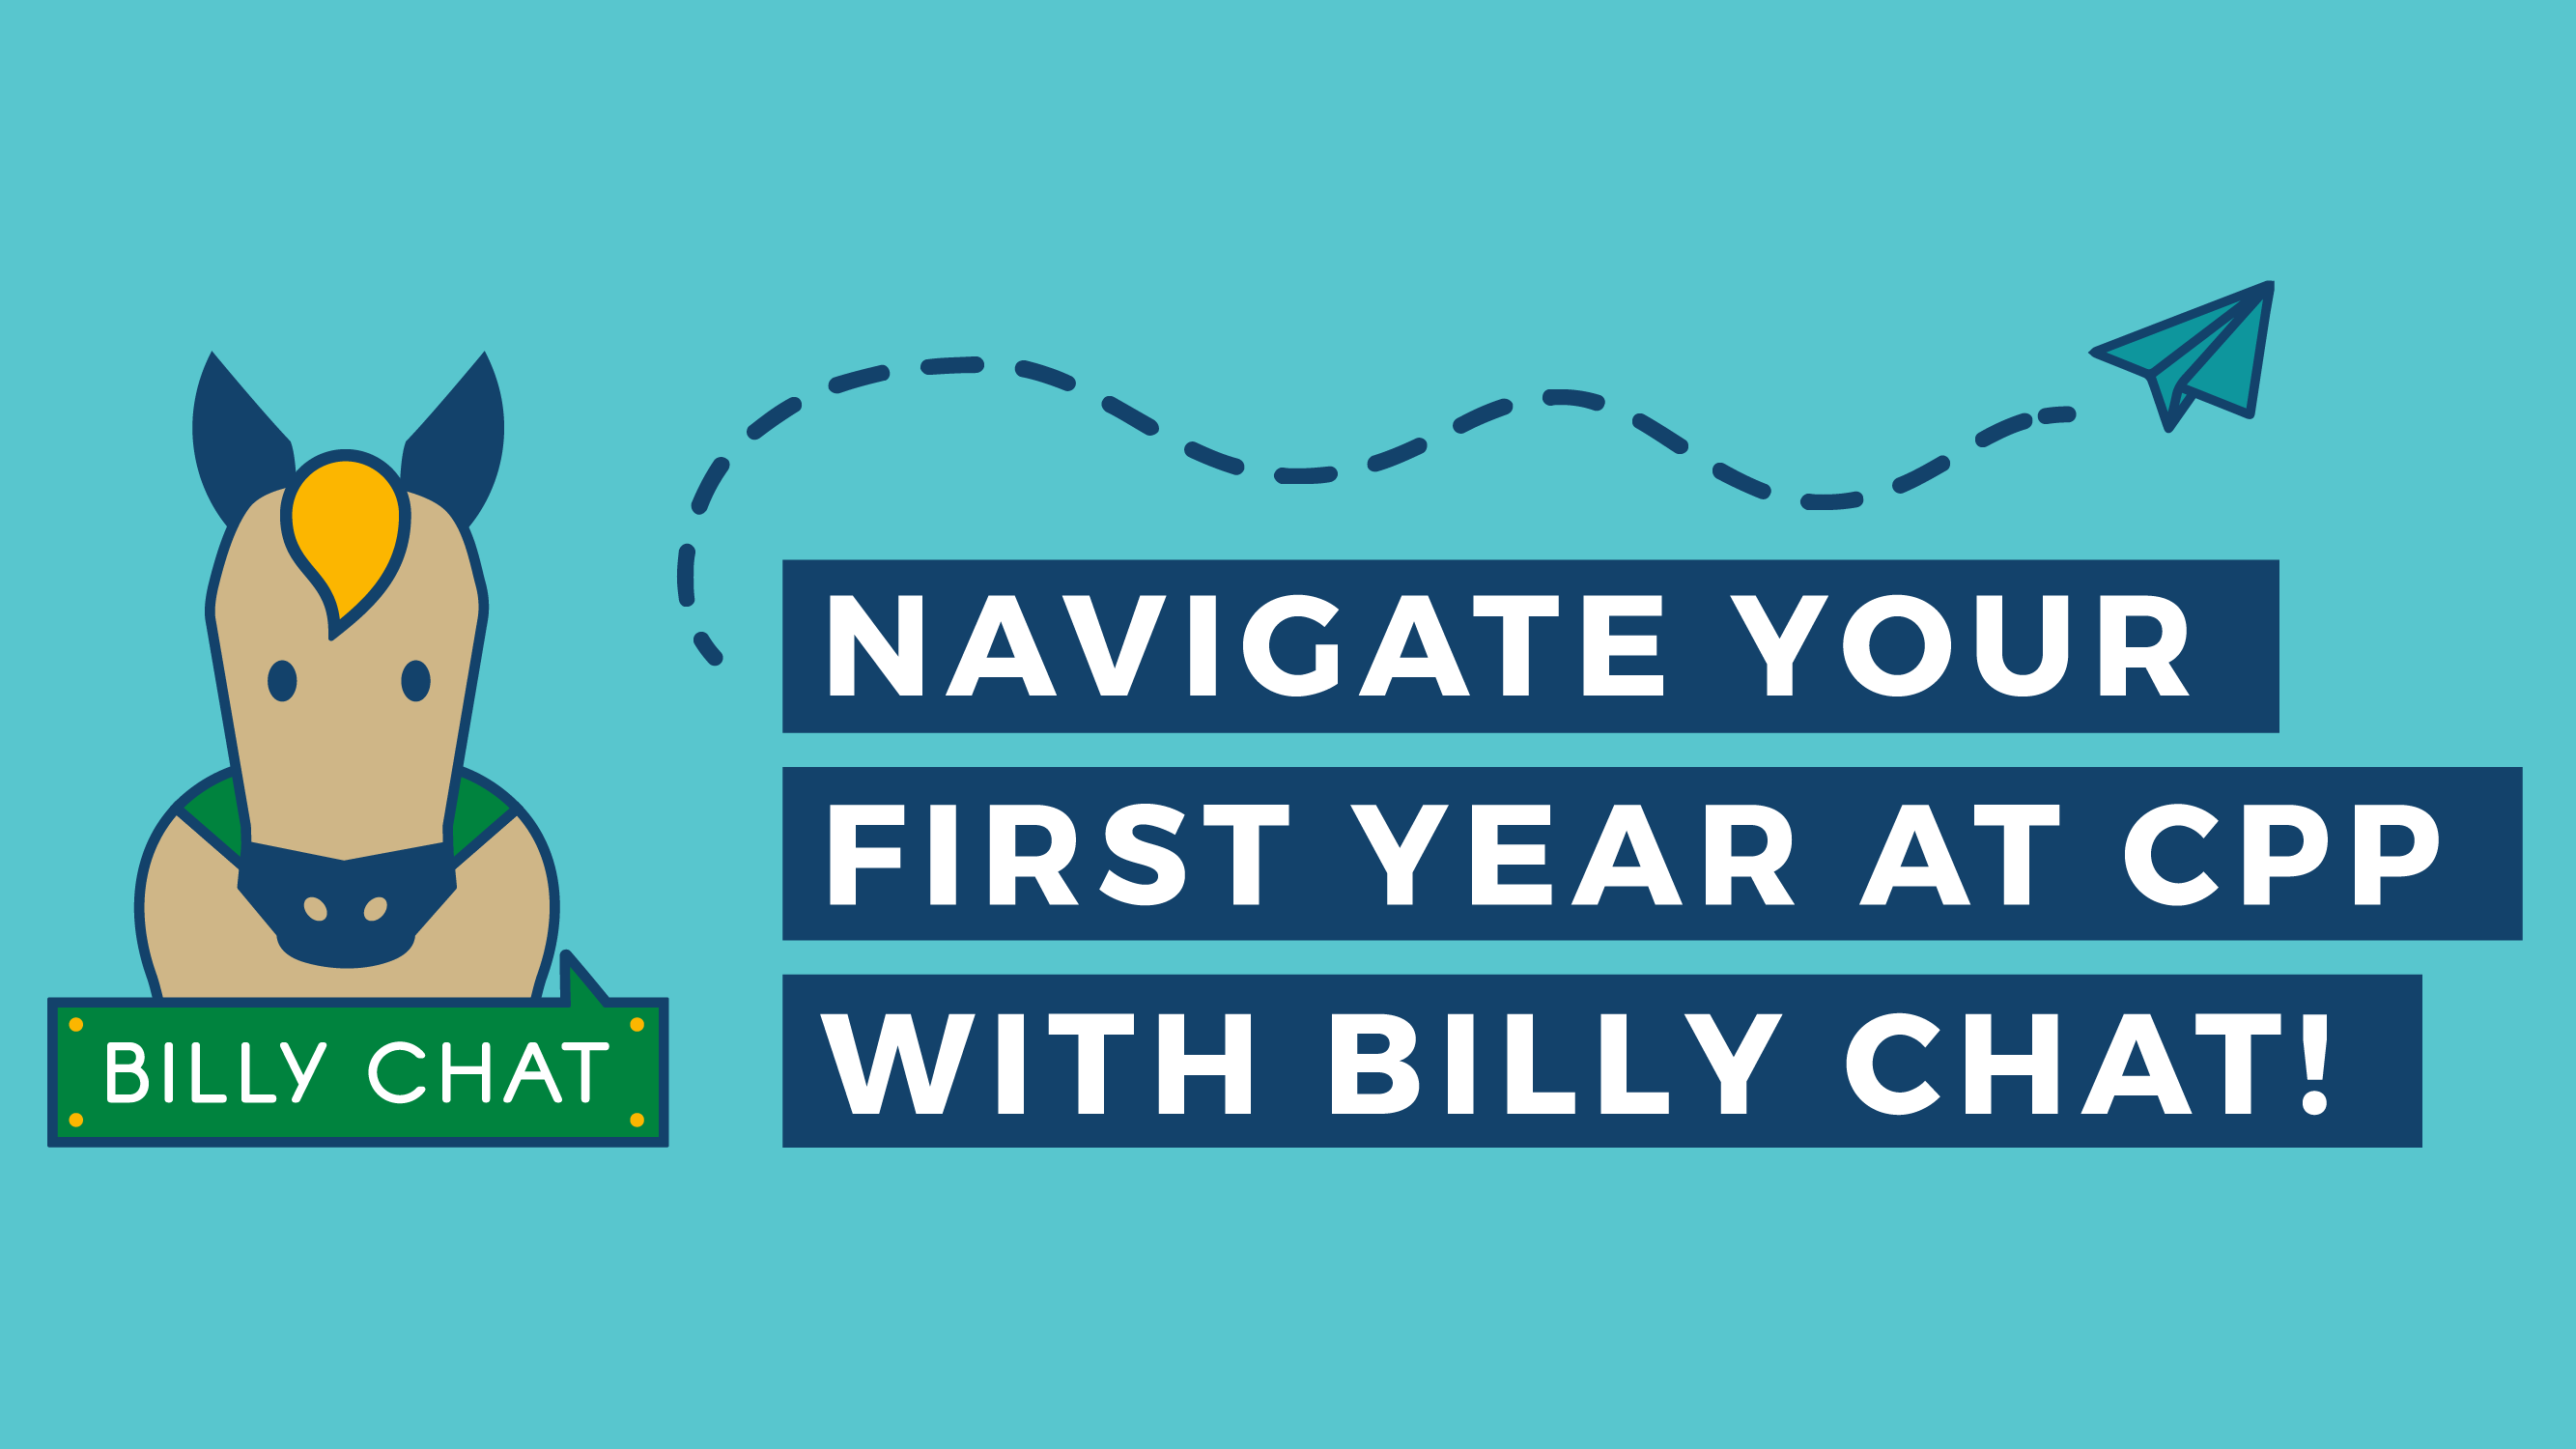 Billy Chat - Navigate your first year at CPP with Billy Chat